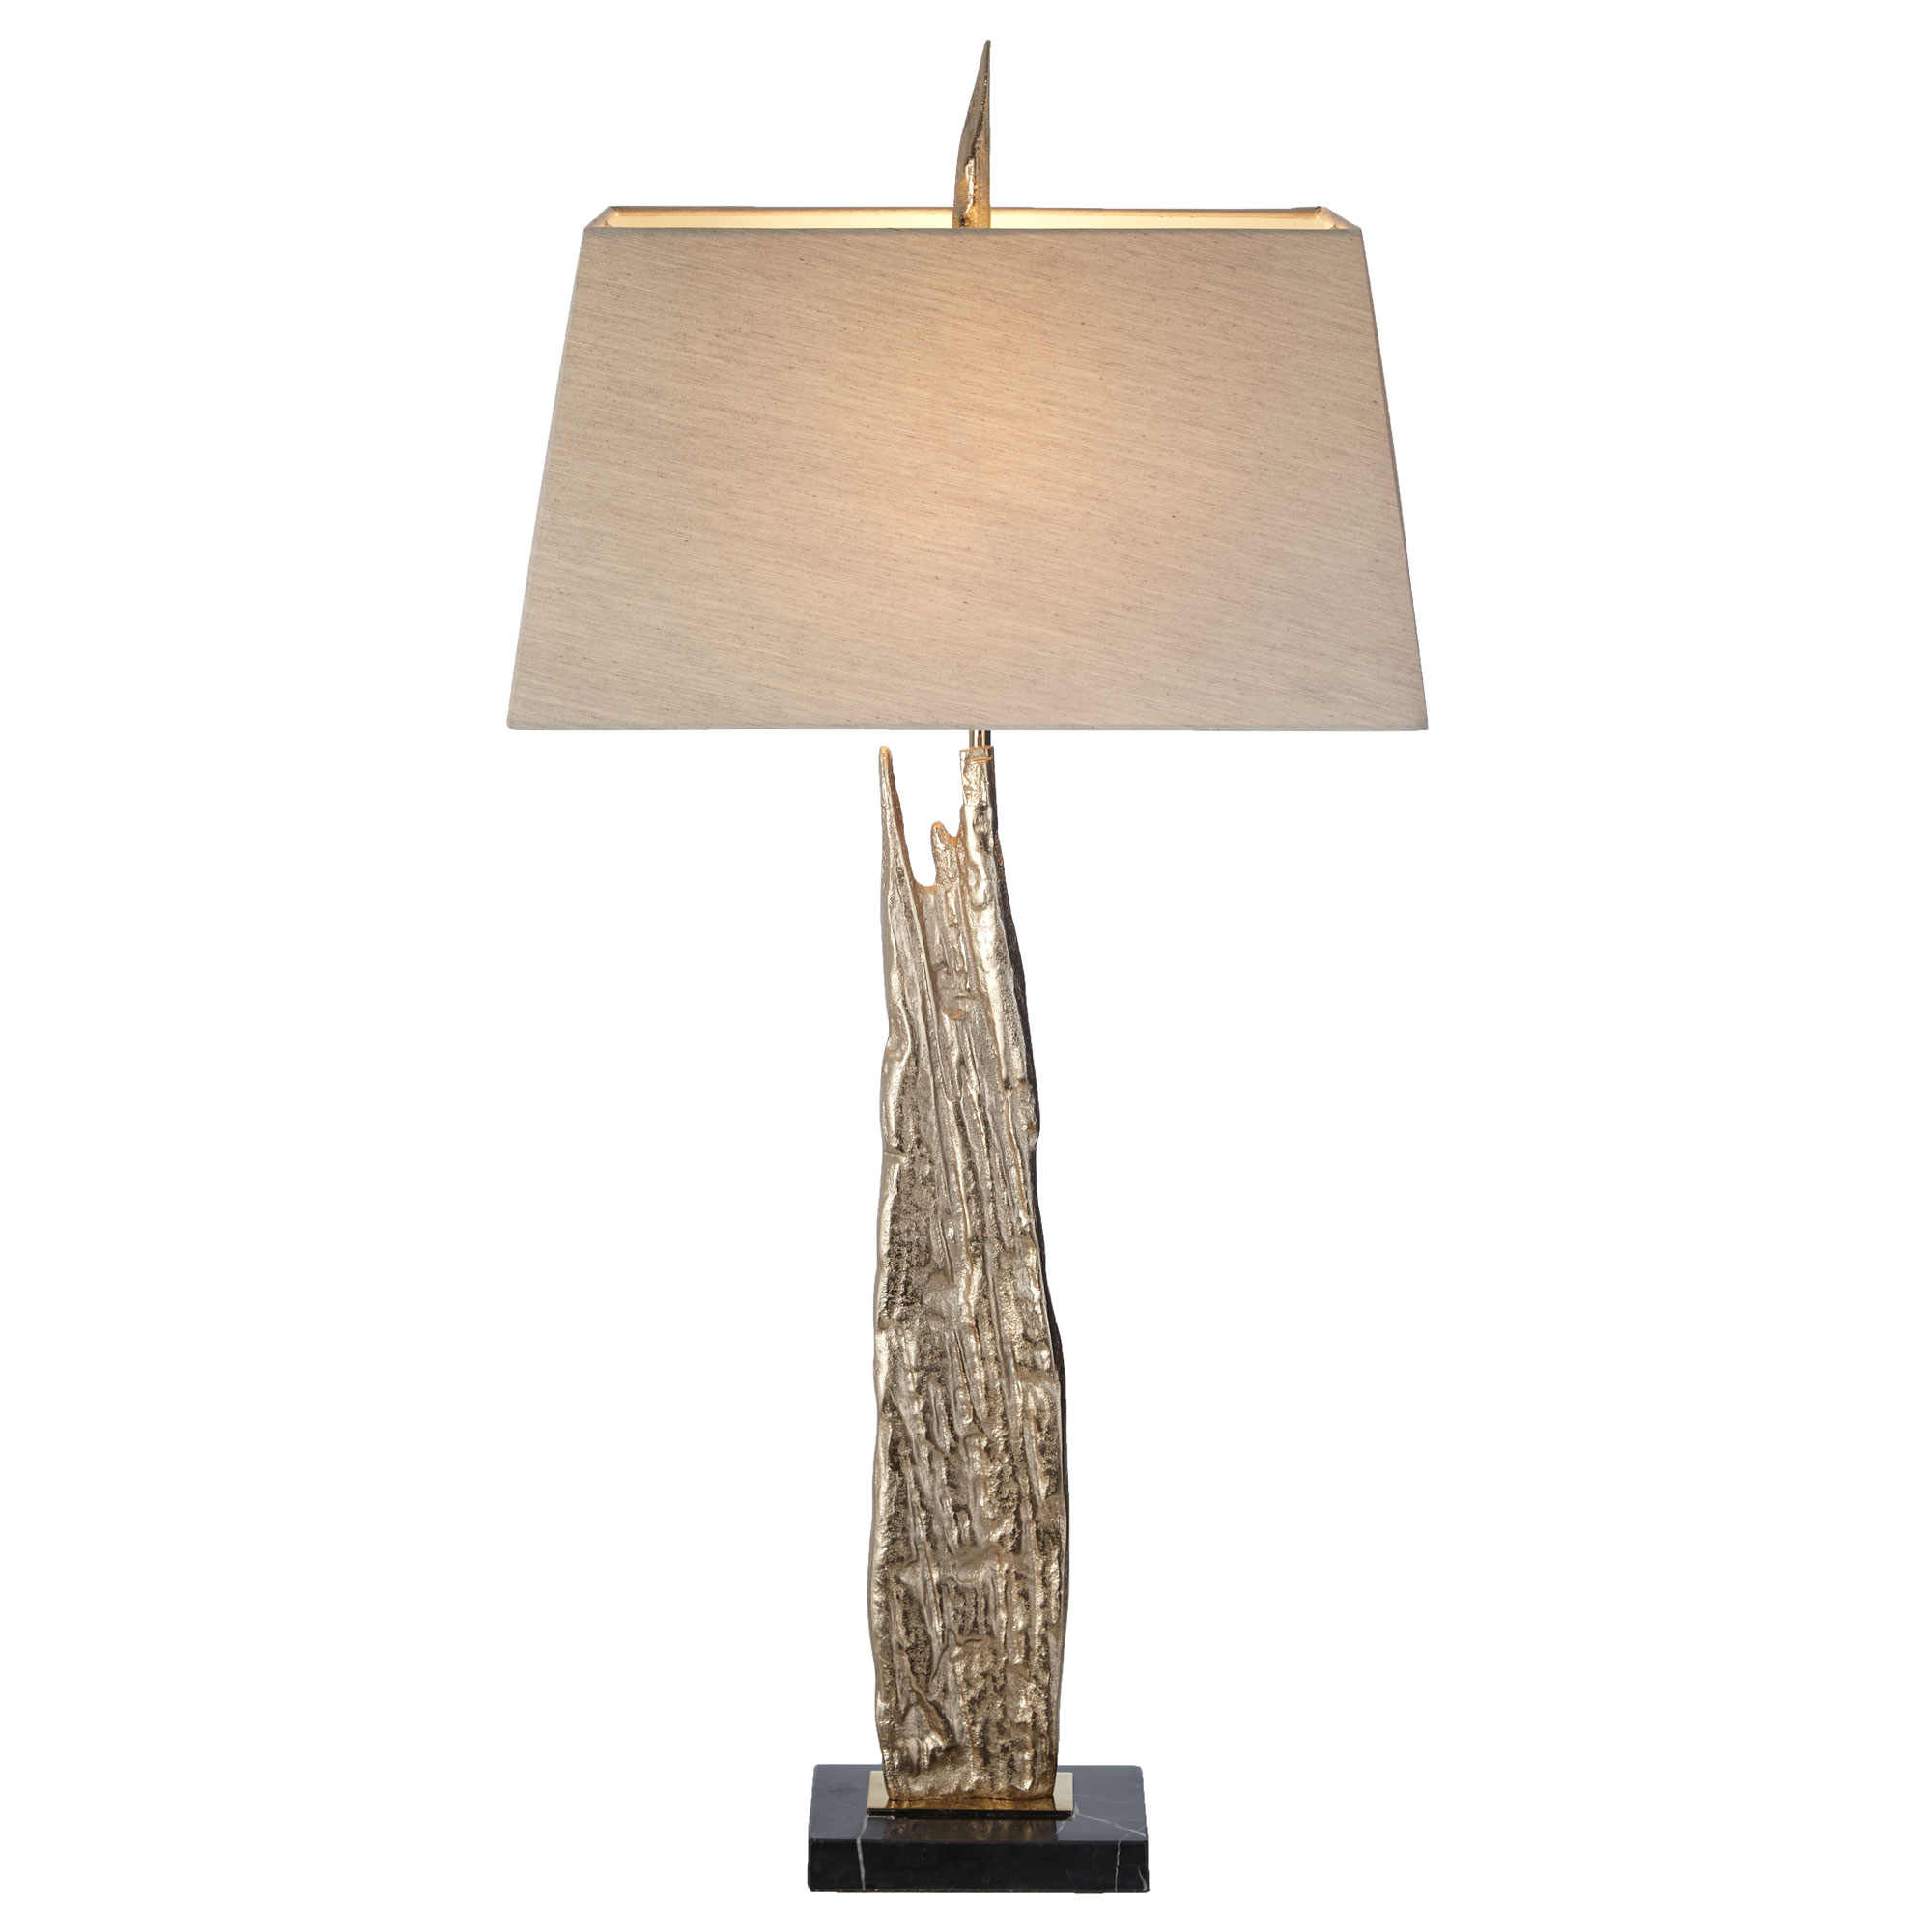 Albi Table Lamp marble base gold shard